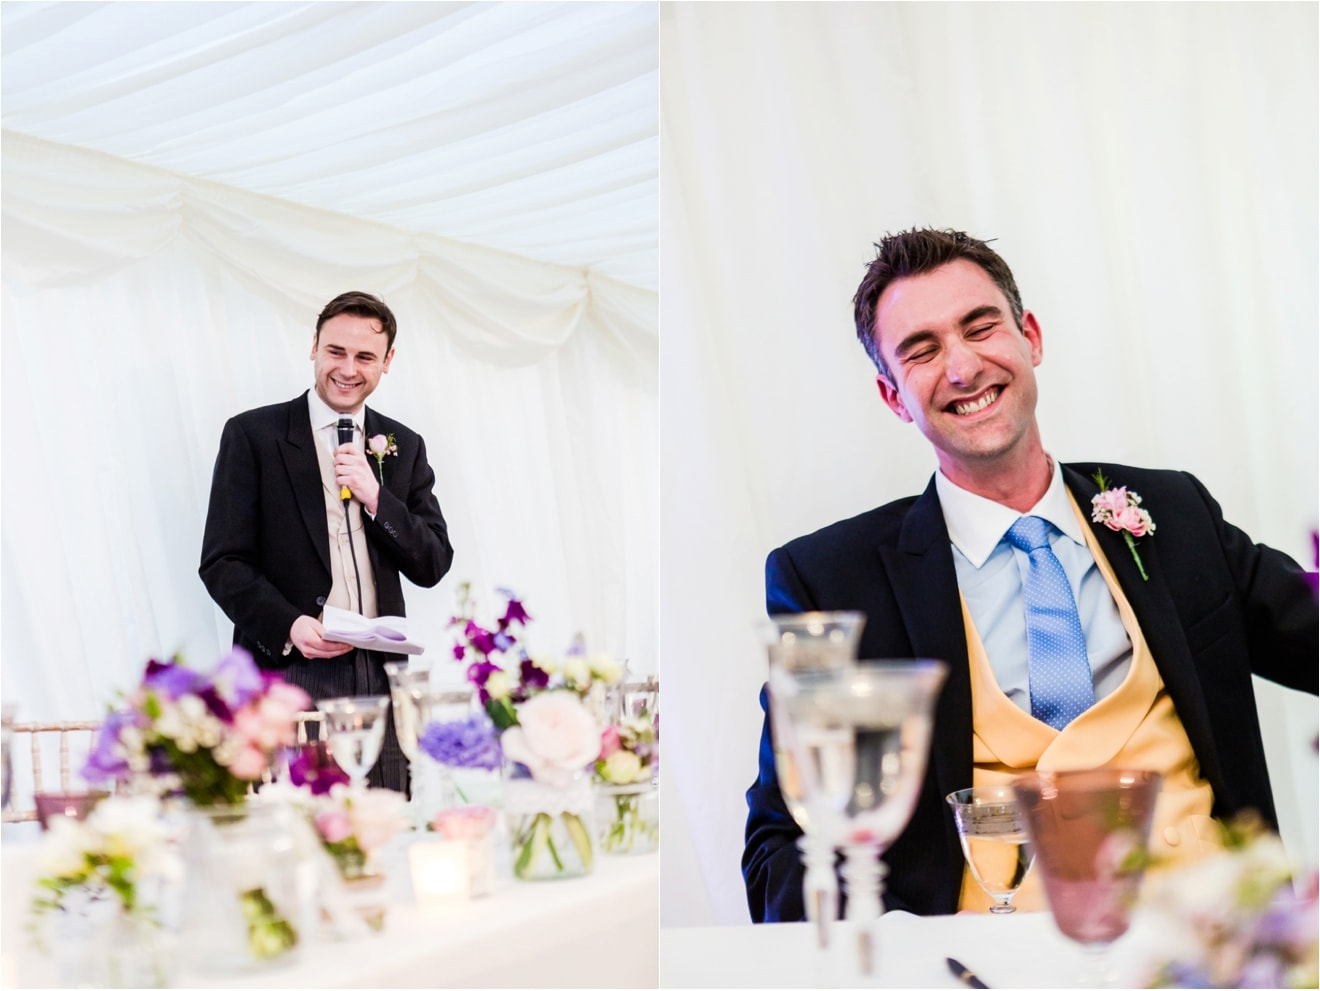 wedding-at-hambledon-vineyard-eddie-judd-photographer0106